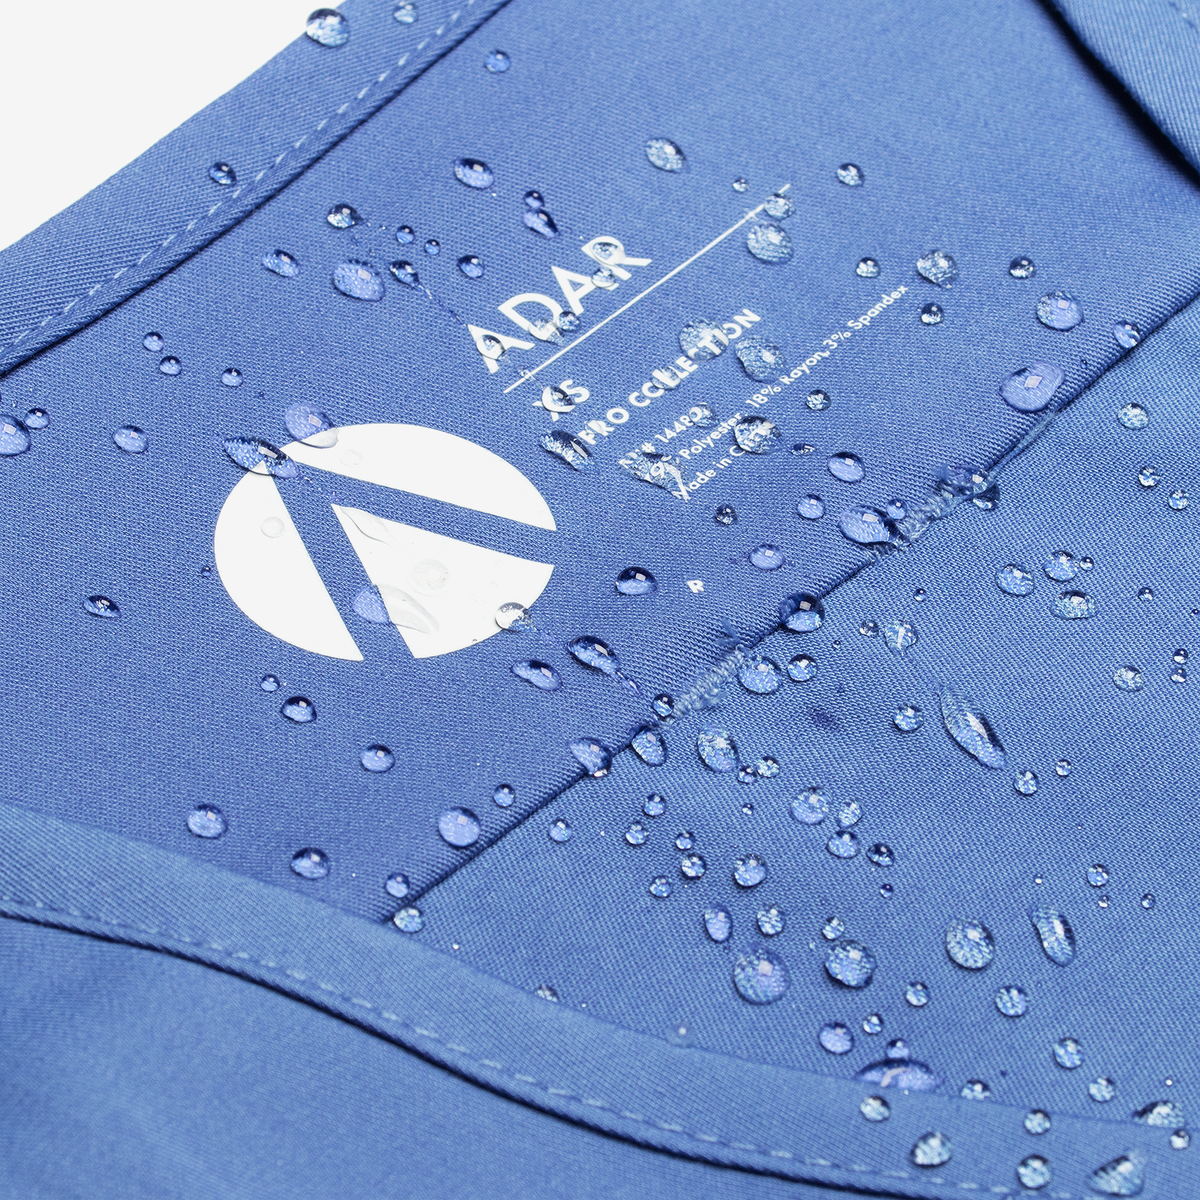 Waterproof fabrics product photography